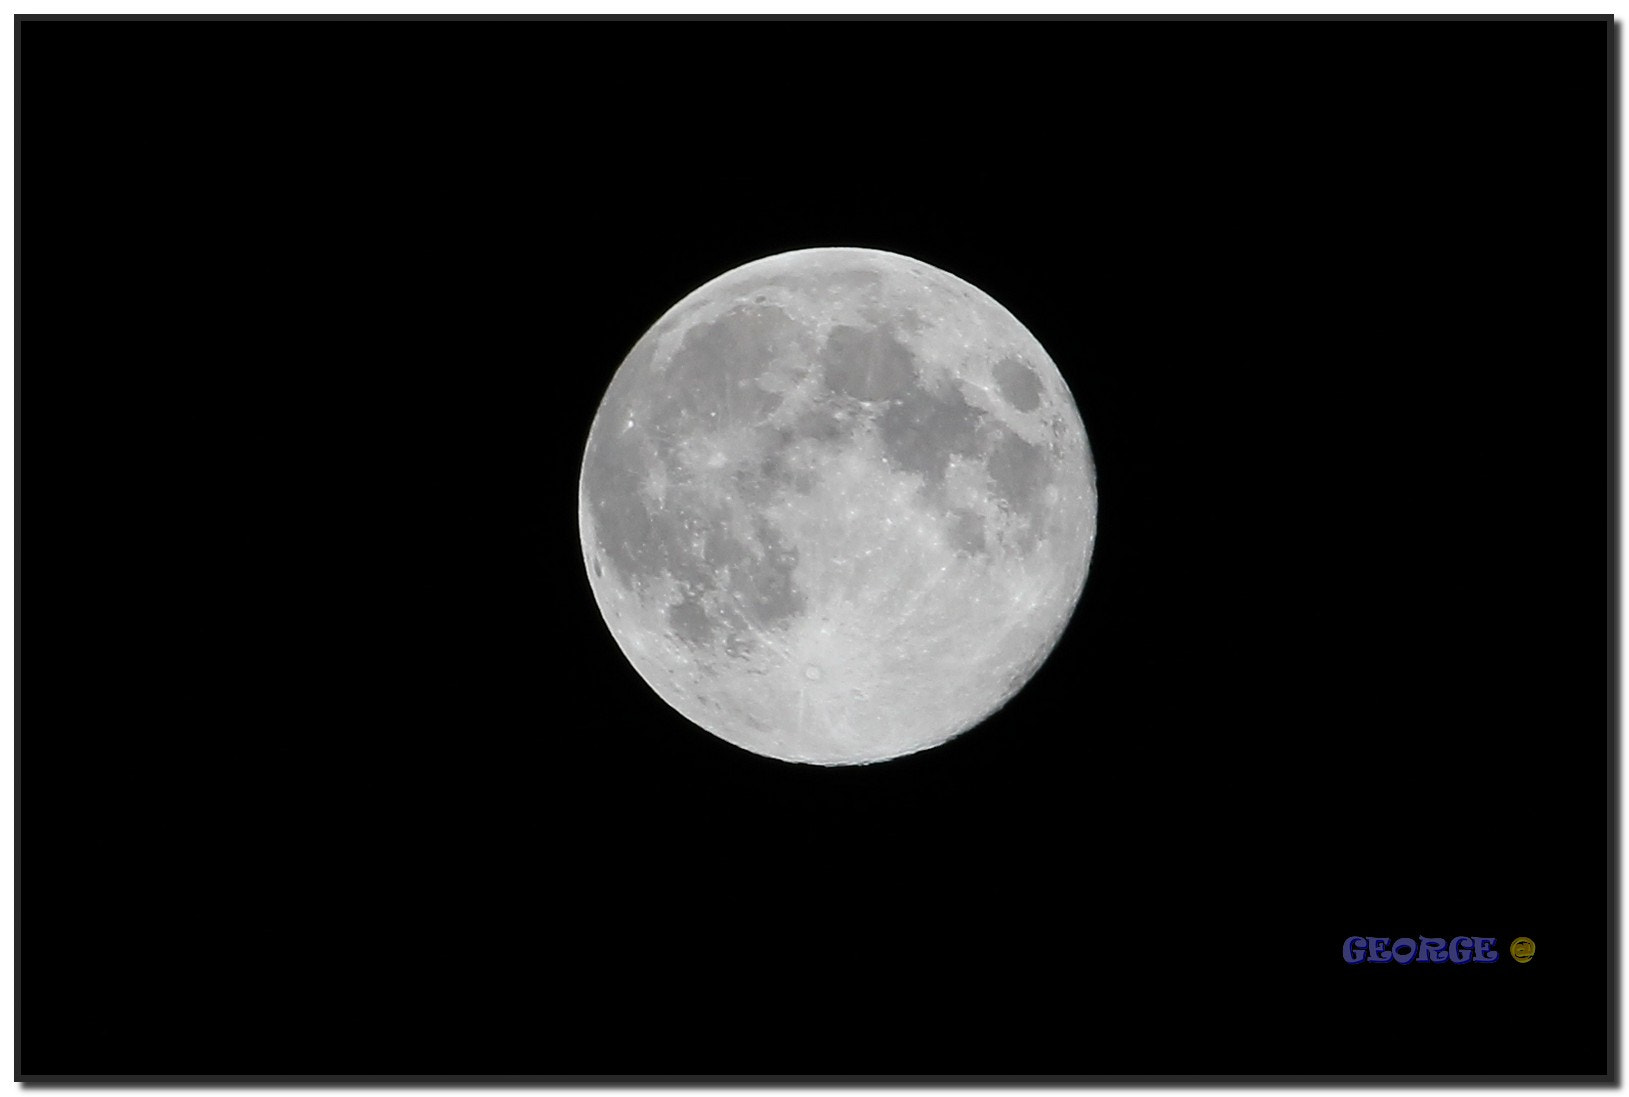 Photograph Fool Moon by George @  on 500px